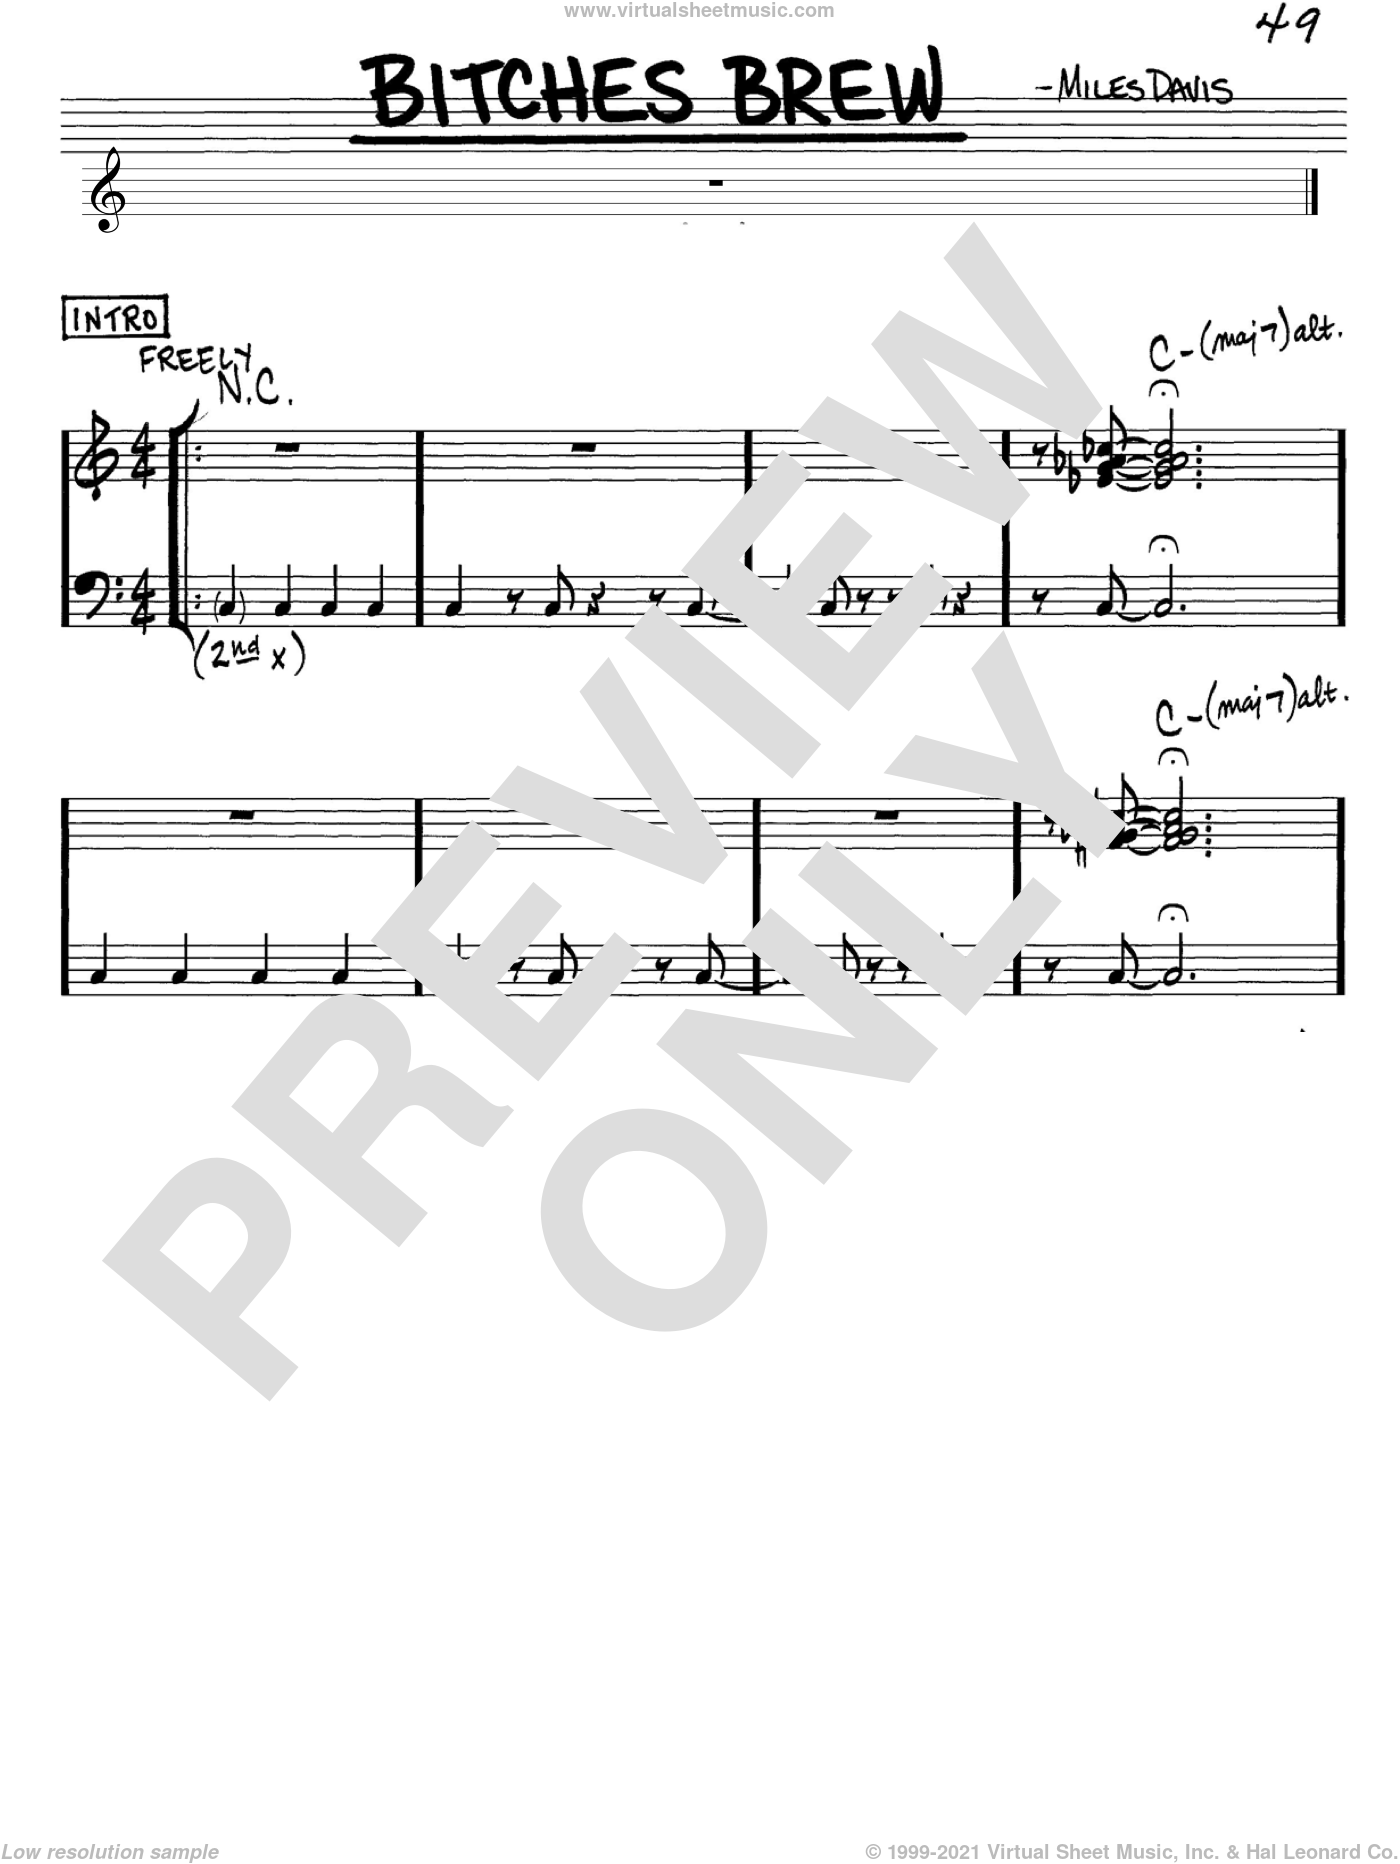 Bitches Brew sheet music for voice and other instruments (in C) by Miles Davis, intermediate skill level